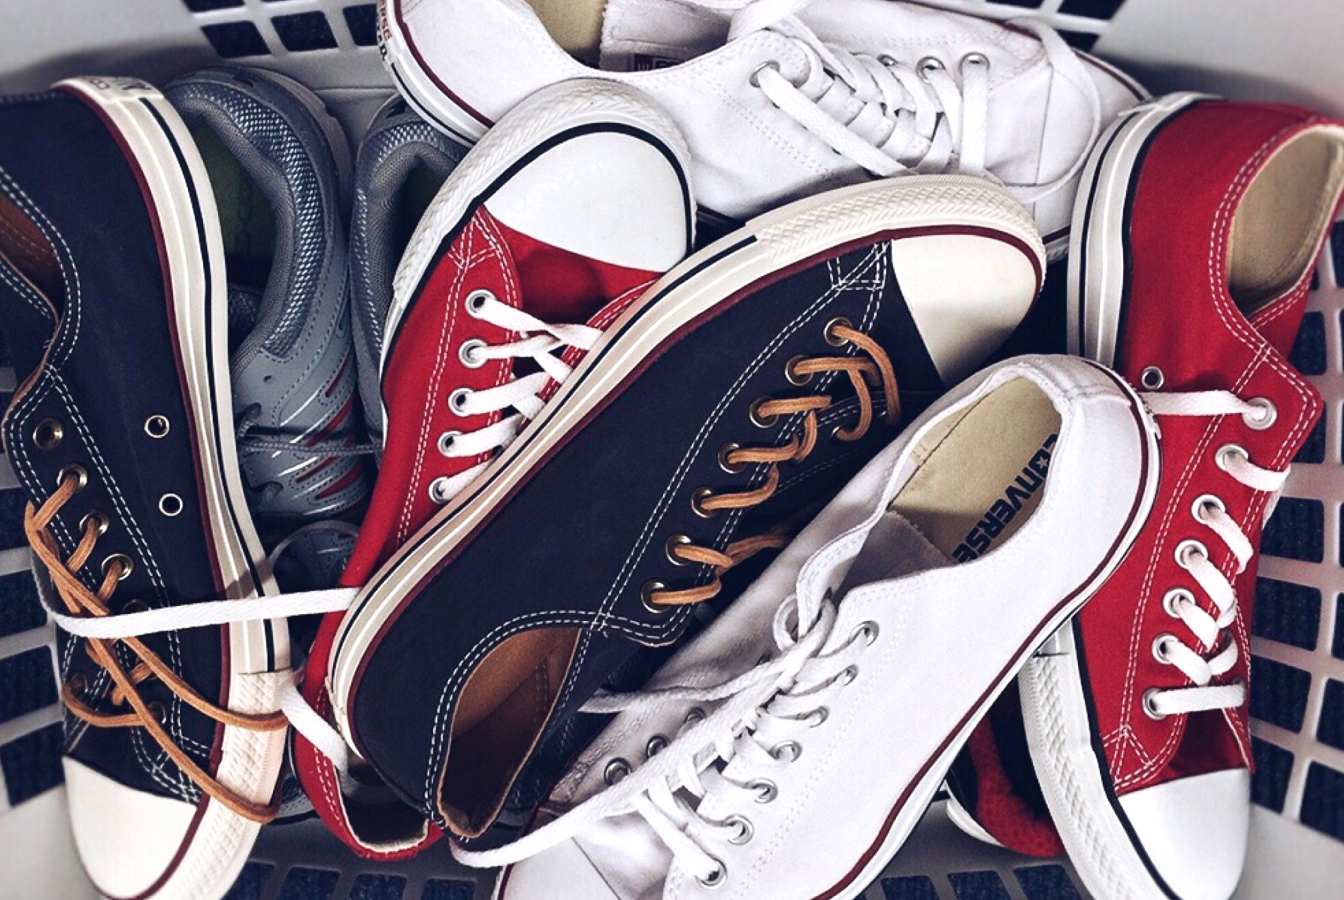 Assortment of shoes in a basket